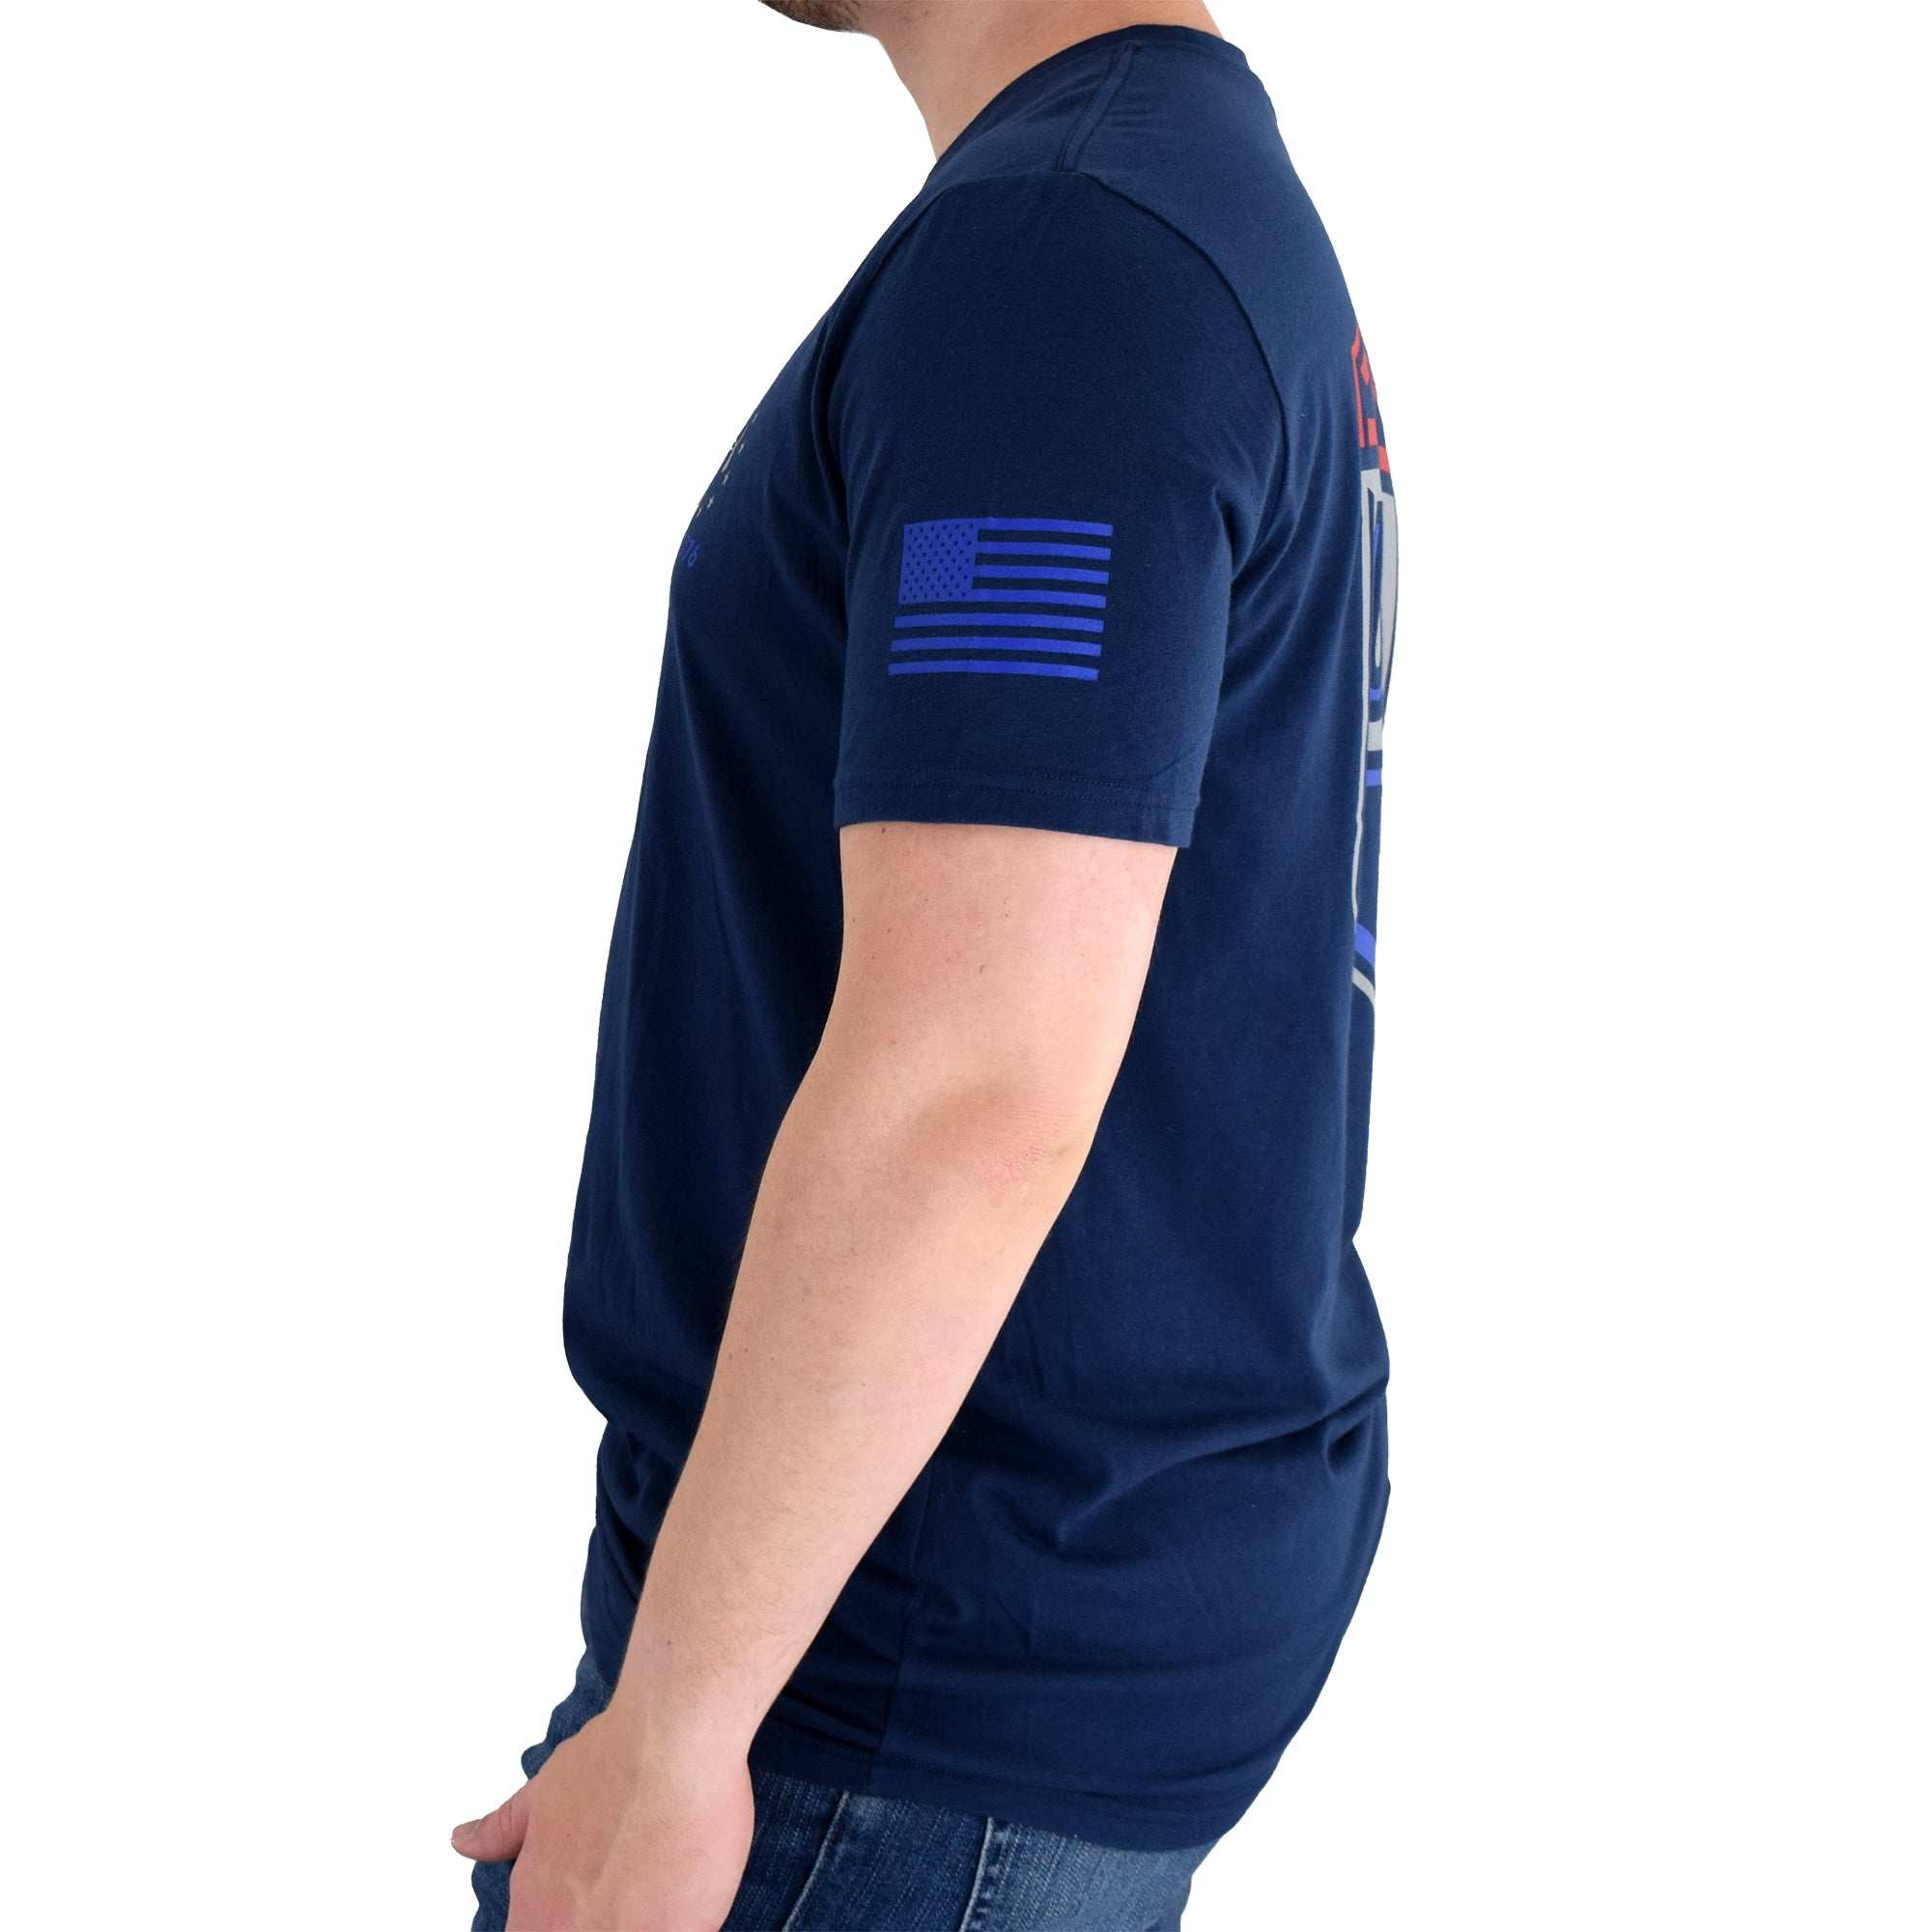 Under Armour USA Emblem T-Shirt Navy